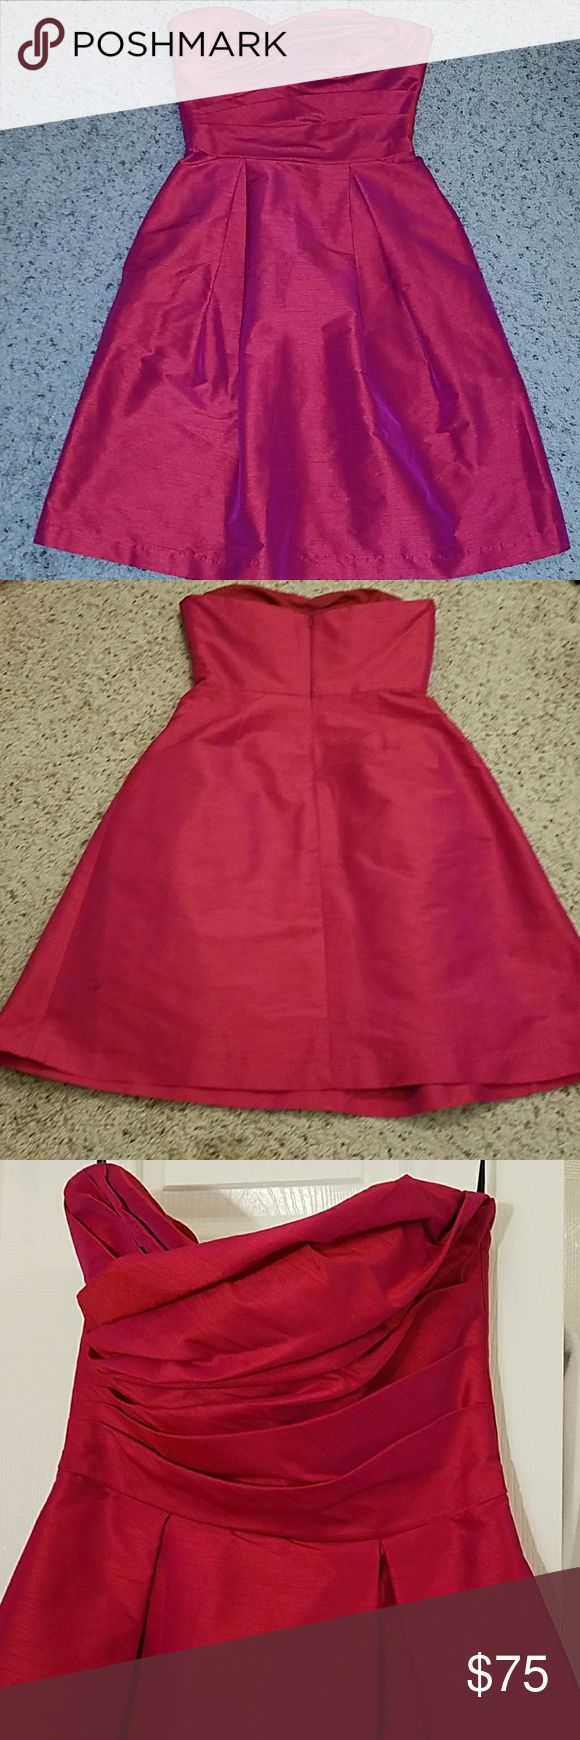 Alfred Sung Strapless Formal Cocktail Dress D536 Worn once, excellent condition  Cocktail length dress with pockets Rear Center Zipper color Sangria Lined outer and inner shell polyester Silk dupioni look Style number D536 alfred sung Dresses Wedding